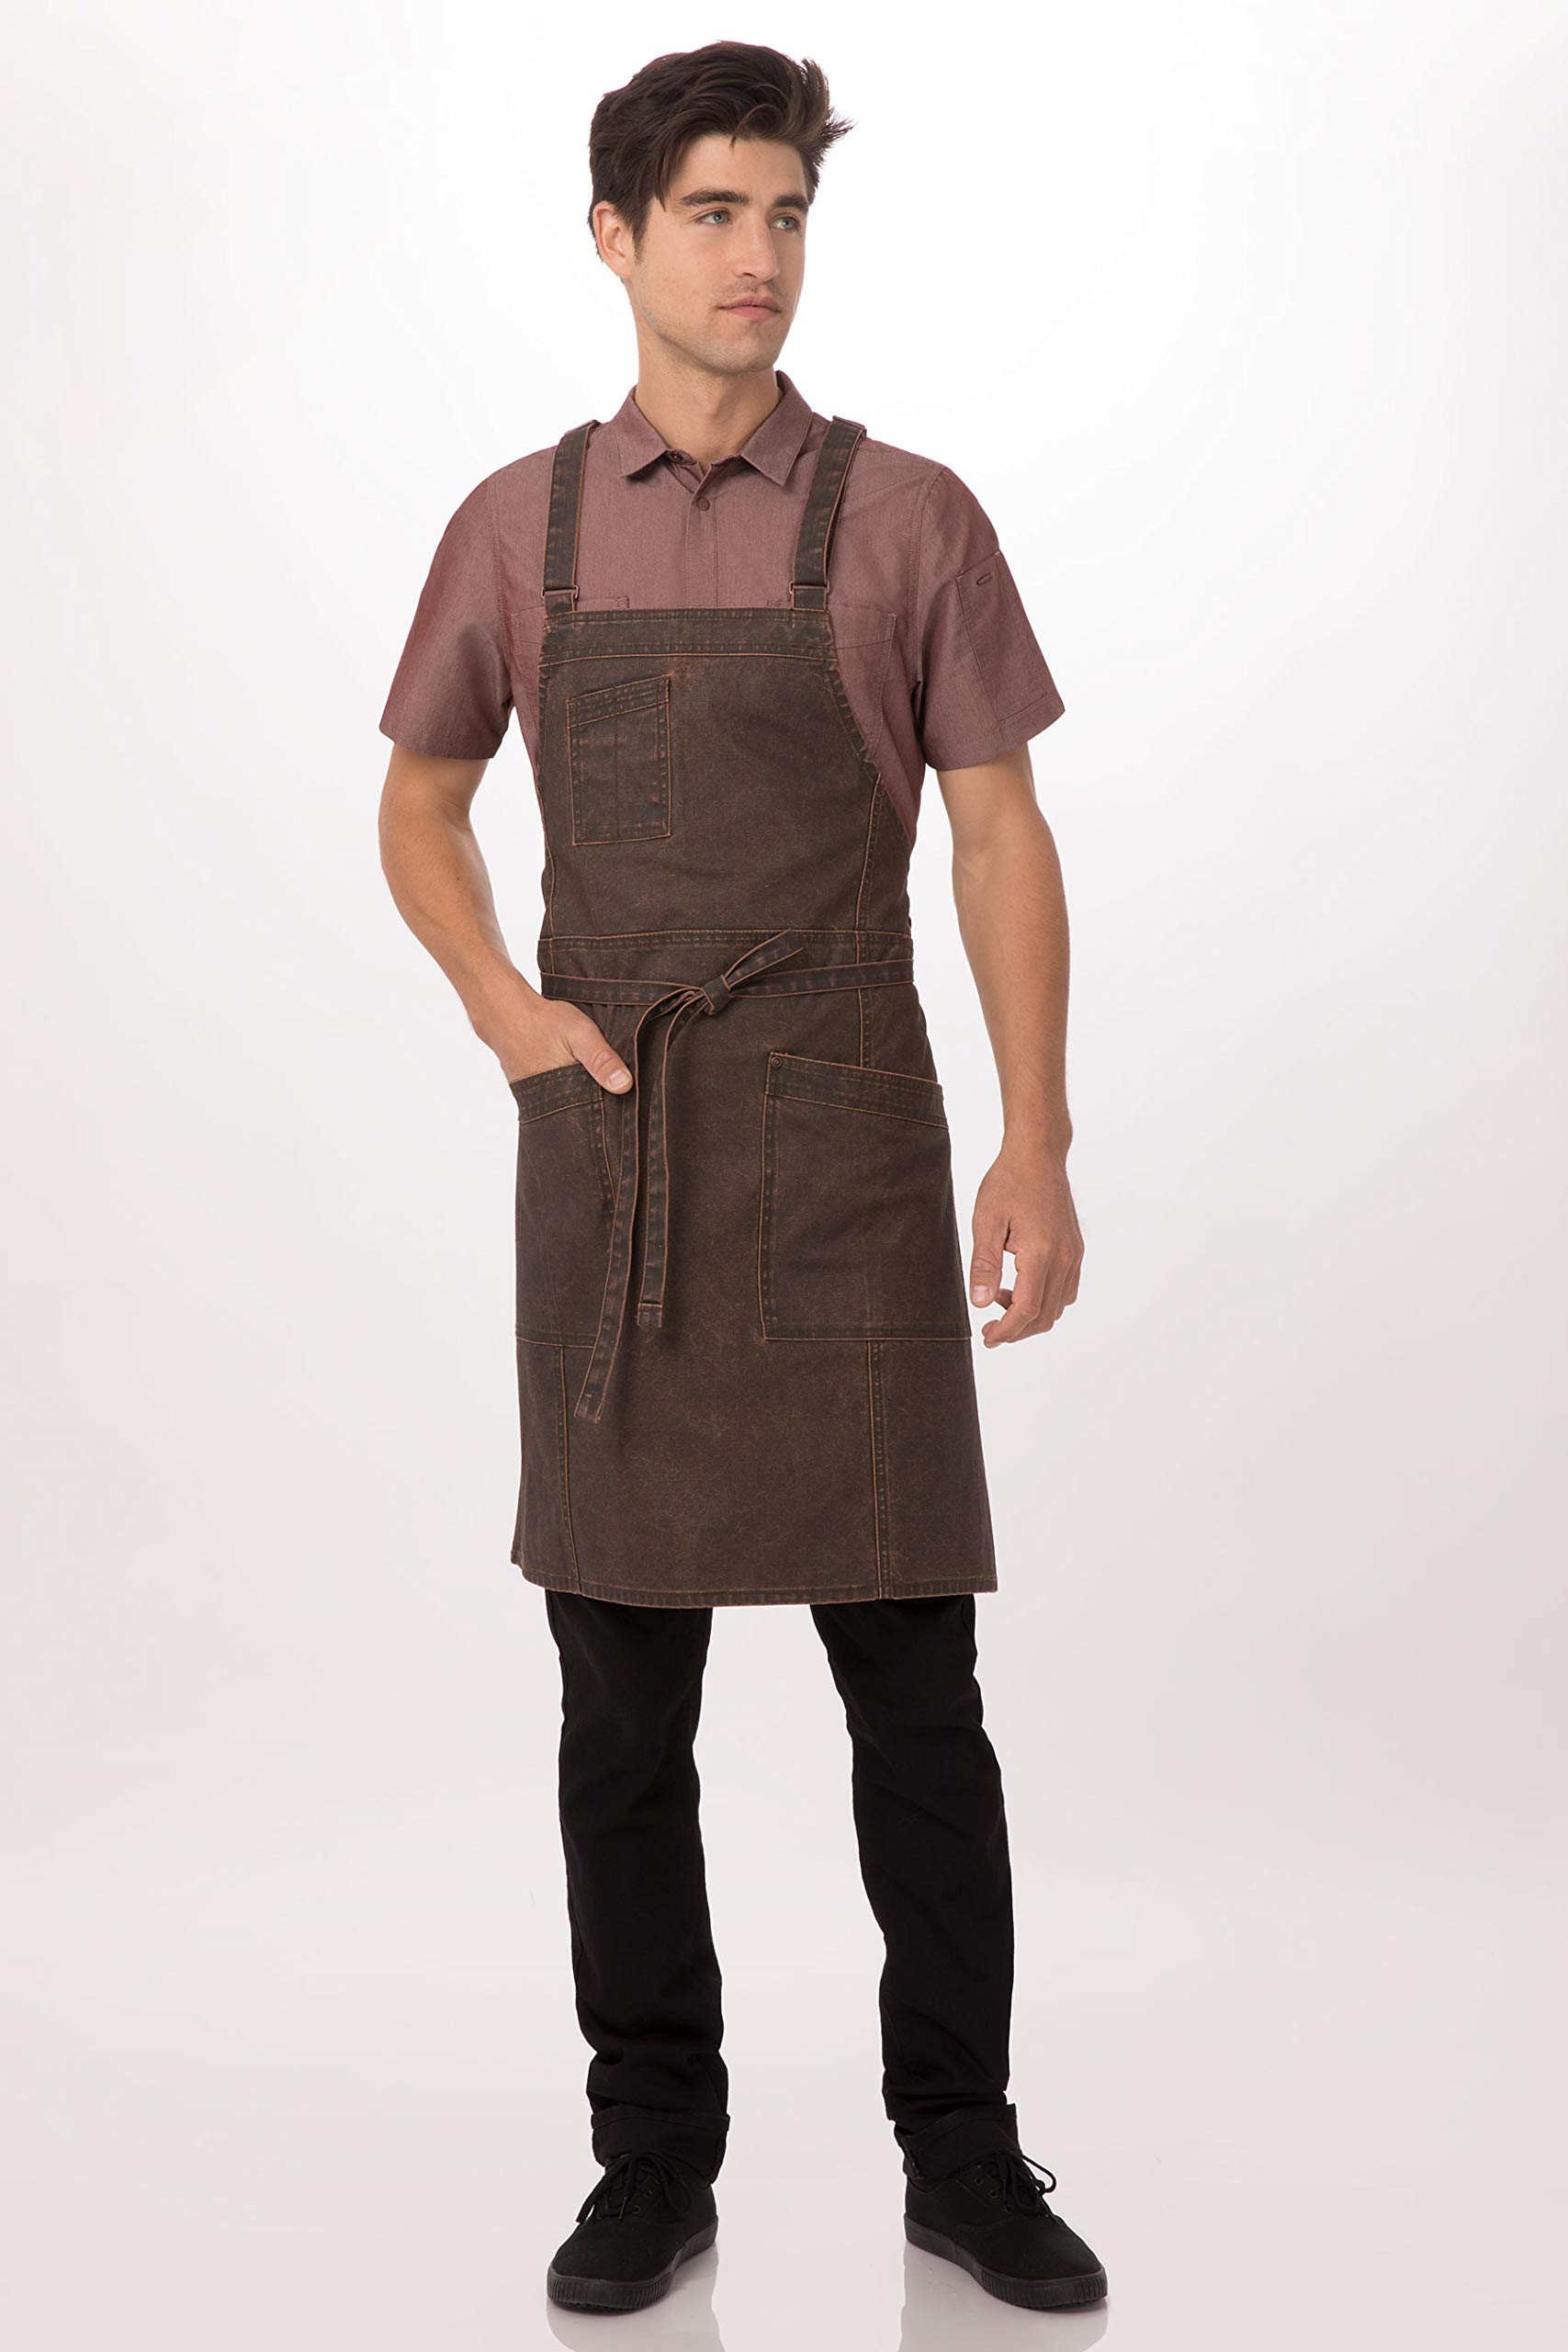 Chef Works Denver Cross-Back Bib Apron, Choc/Rust, One Size by Chef Works